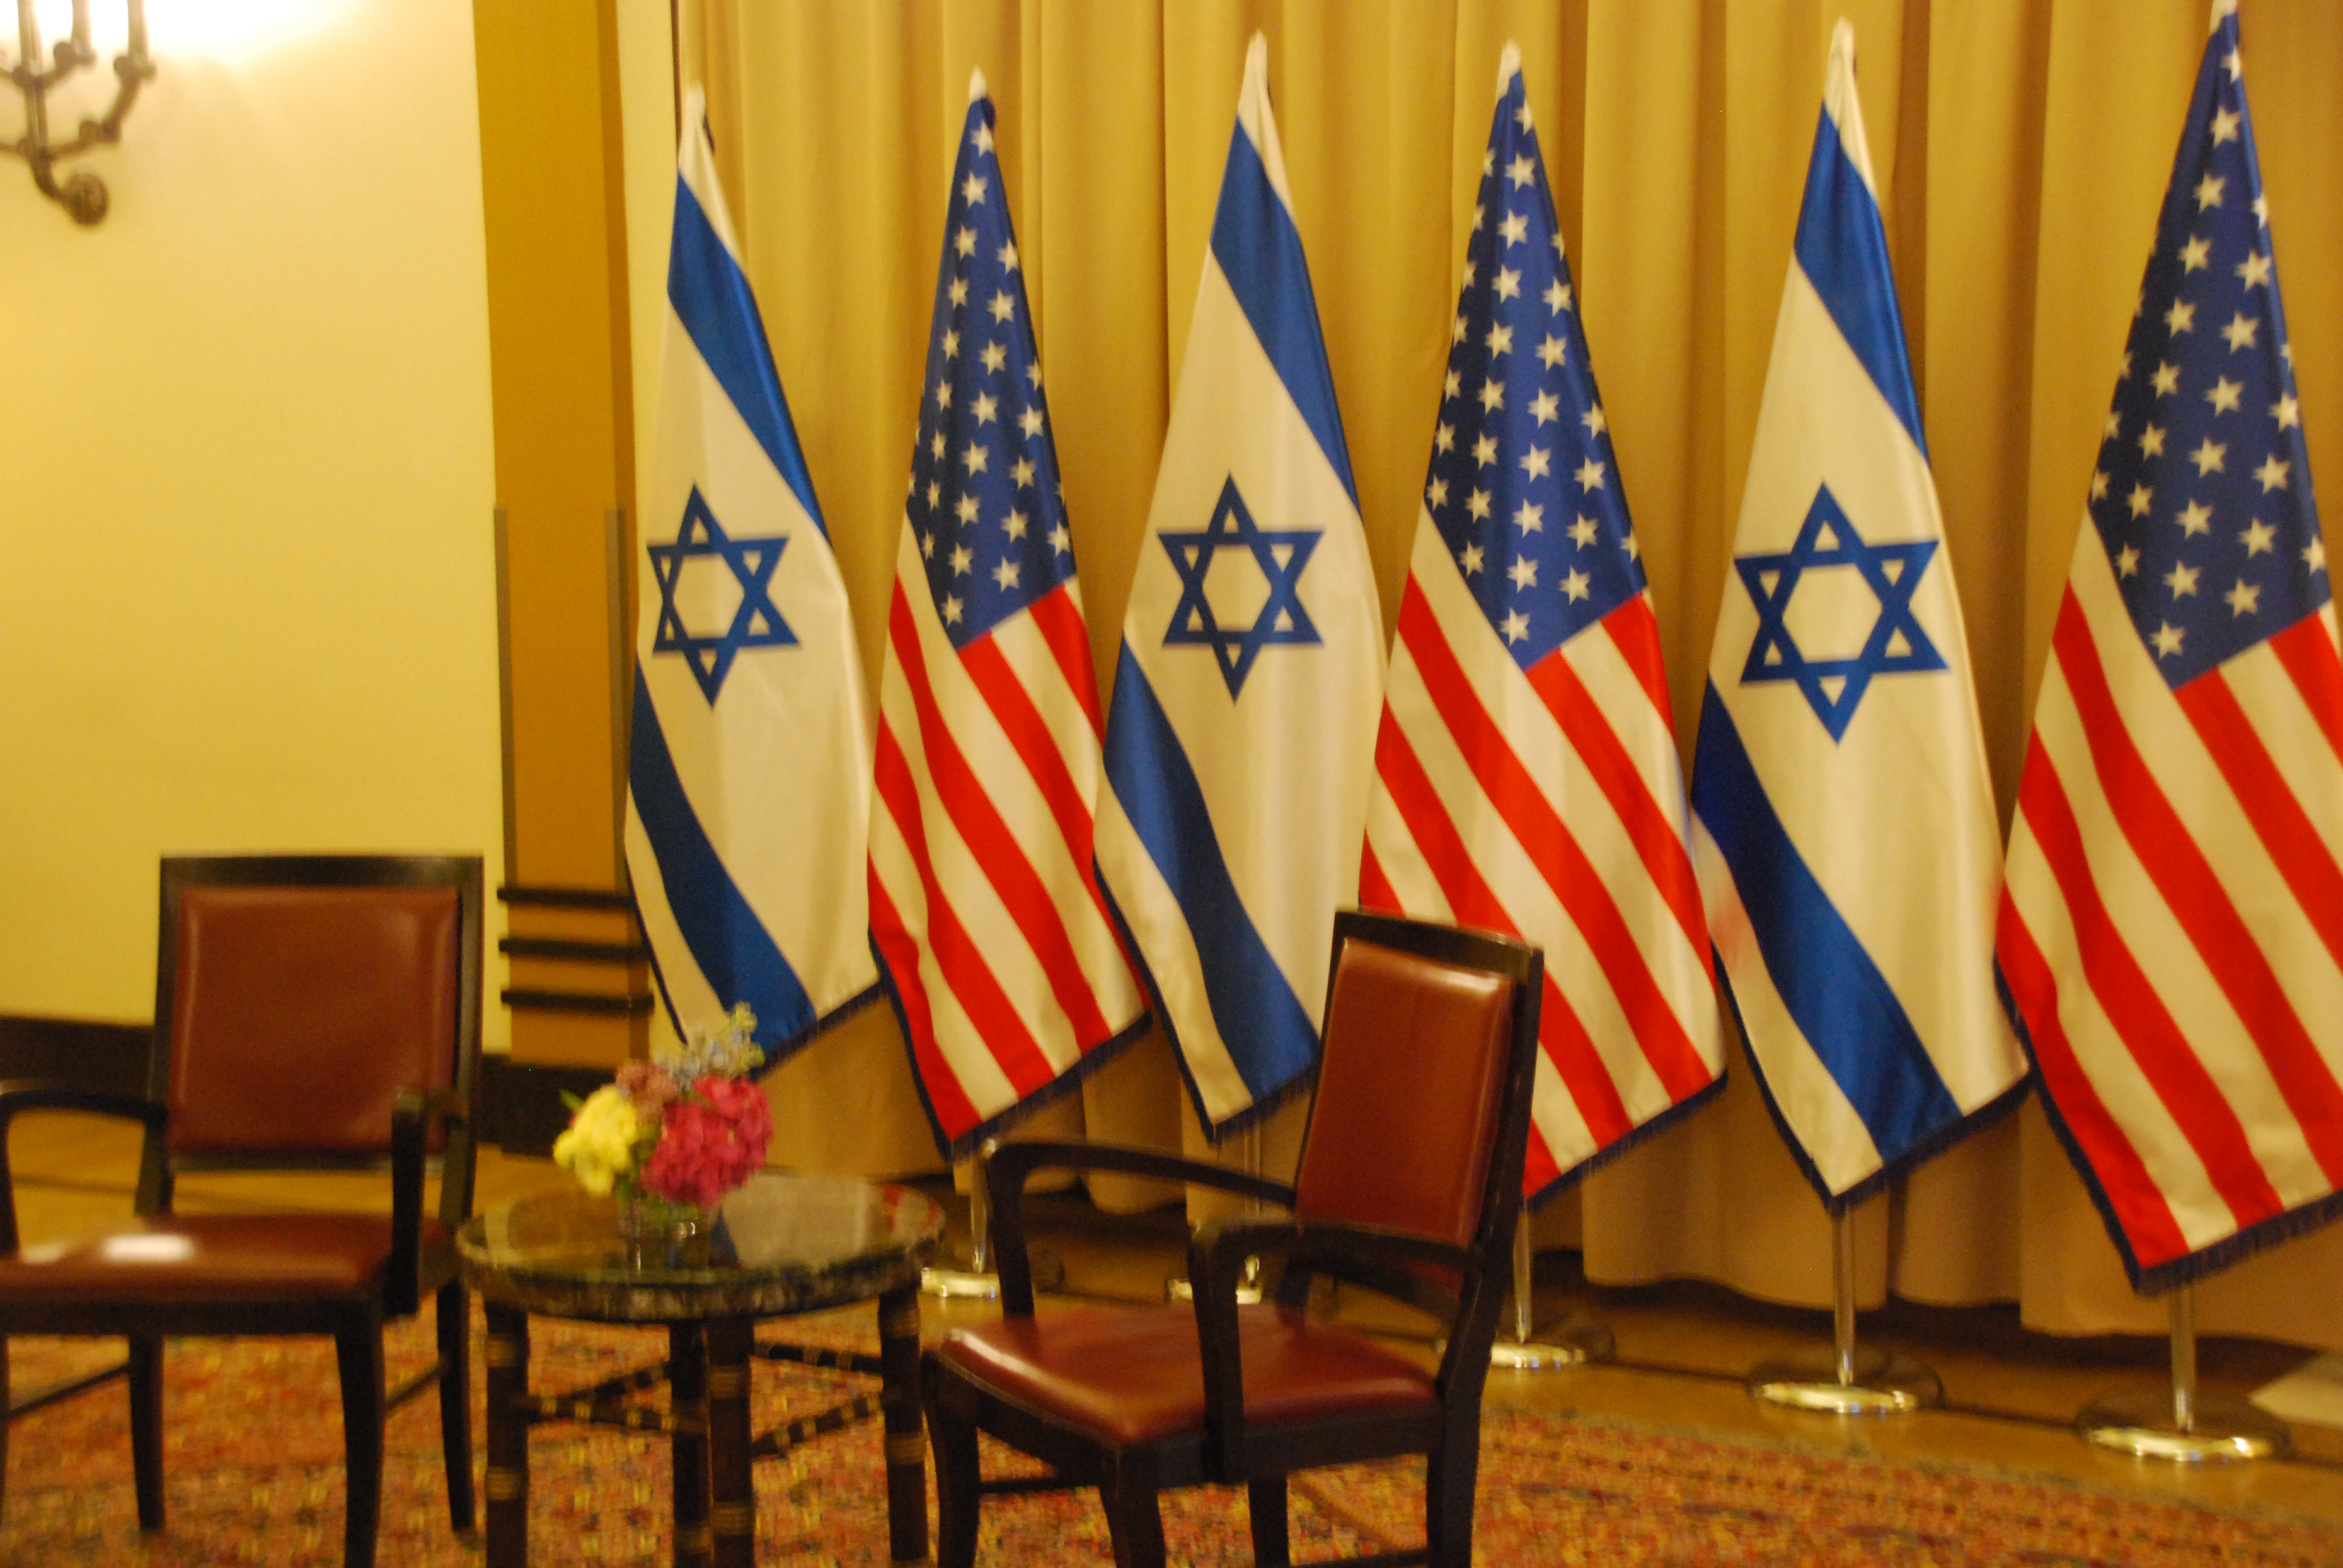 PM Netanyahu's Remarks at US Independence Day Event